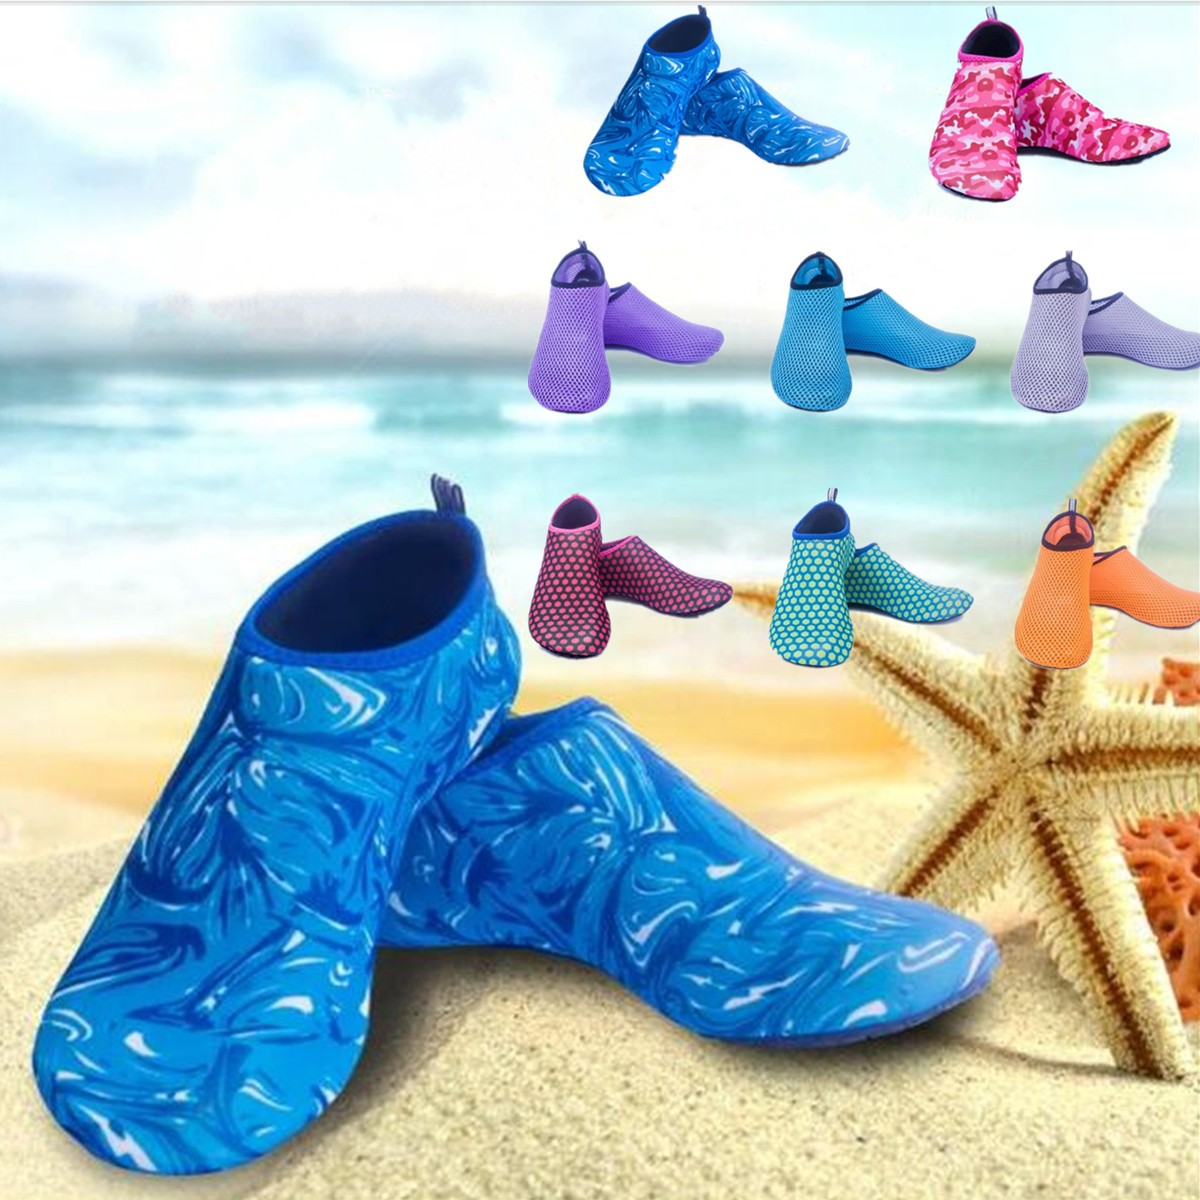 Nonslip Surf Water Beach Shoes Soft Mesh Socks Swim Diving Pool Yoga Exercise Footwear Alex Nld